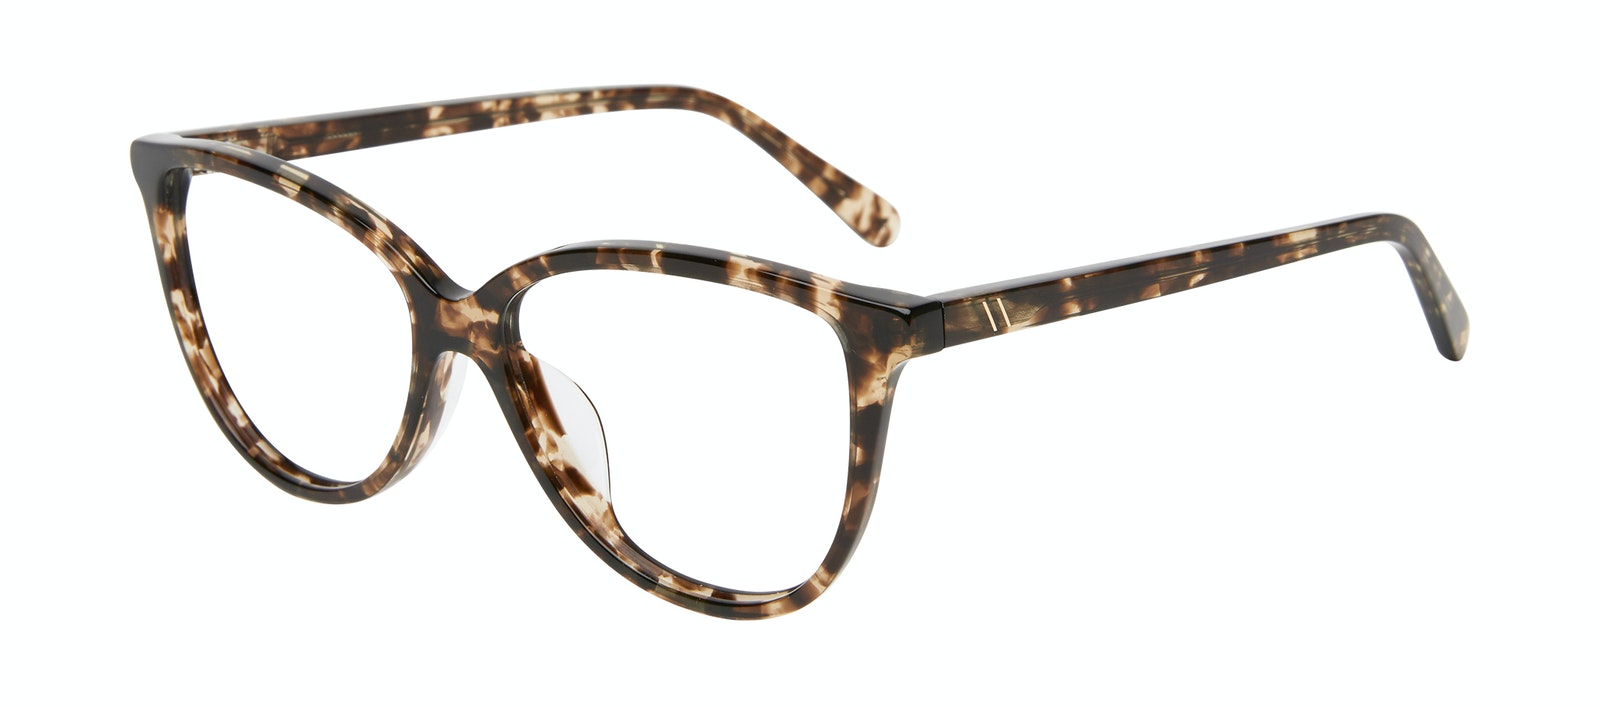 Affordable Fashion Glasses Cat Eye Eyeglasses Women Tailor XL Leopard Tilt